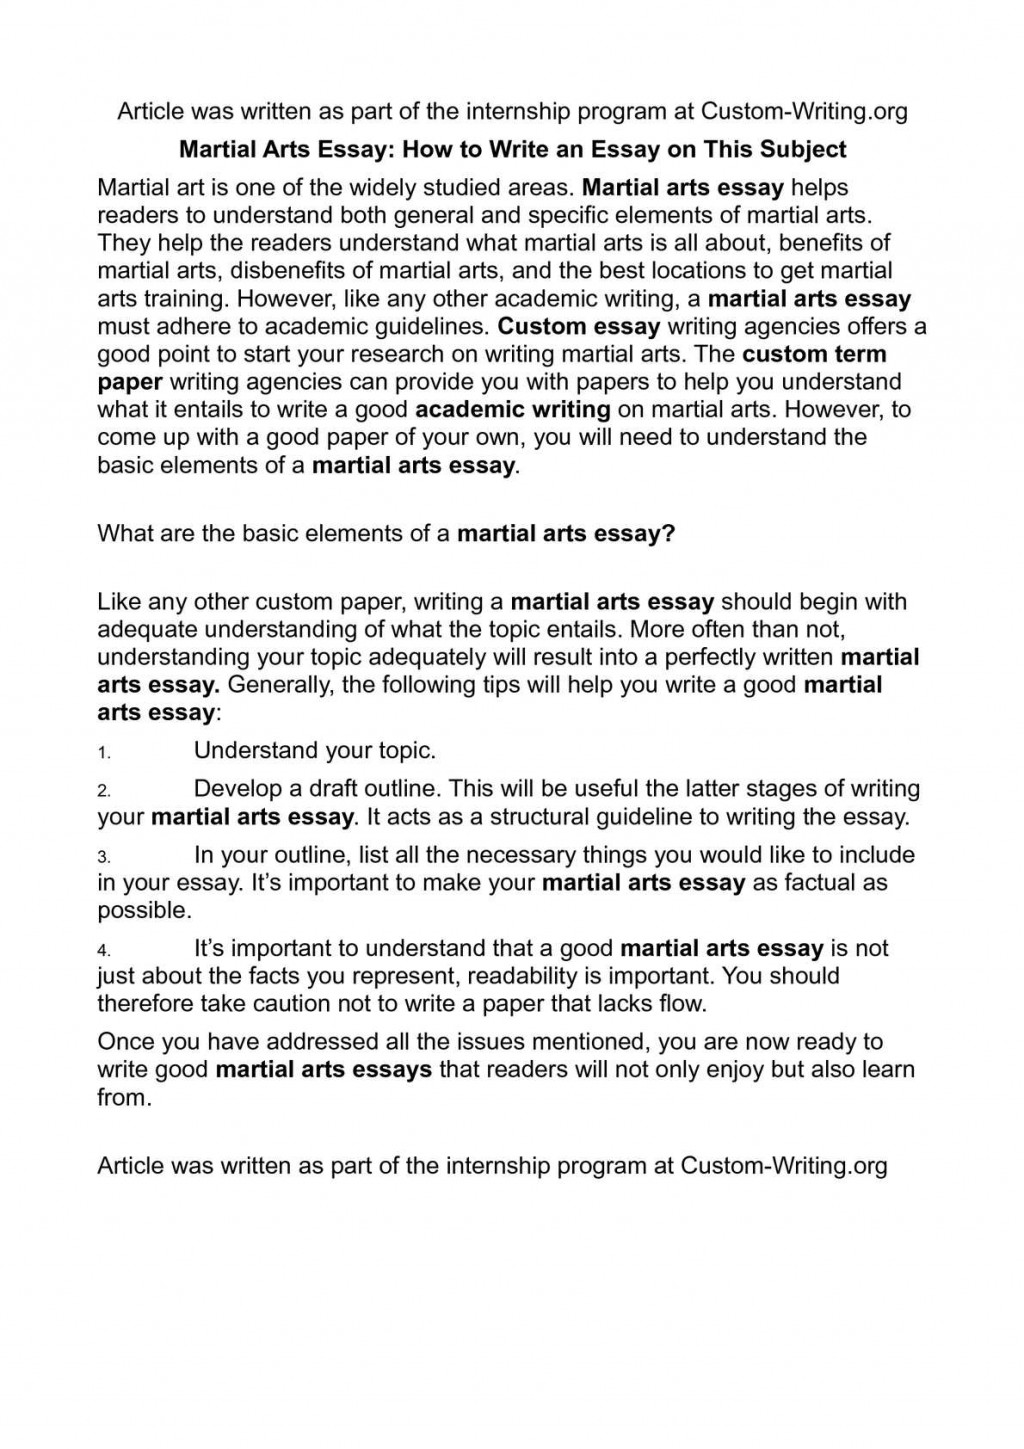 001 How To List Things In An Essay Example Why Is Writing Important Calam Eacute O Martial Arts What Not Write About Colle College Application Fearsome Correct Way Best Large